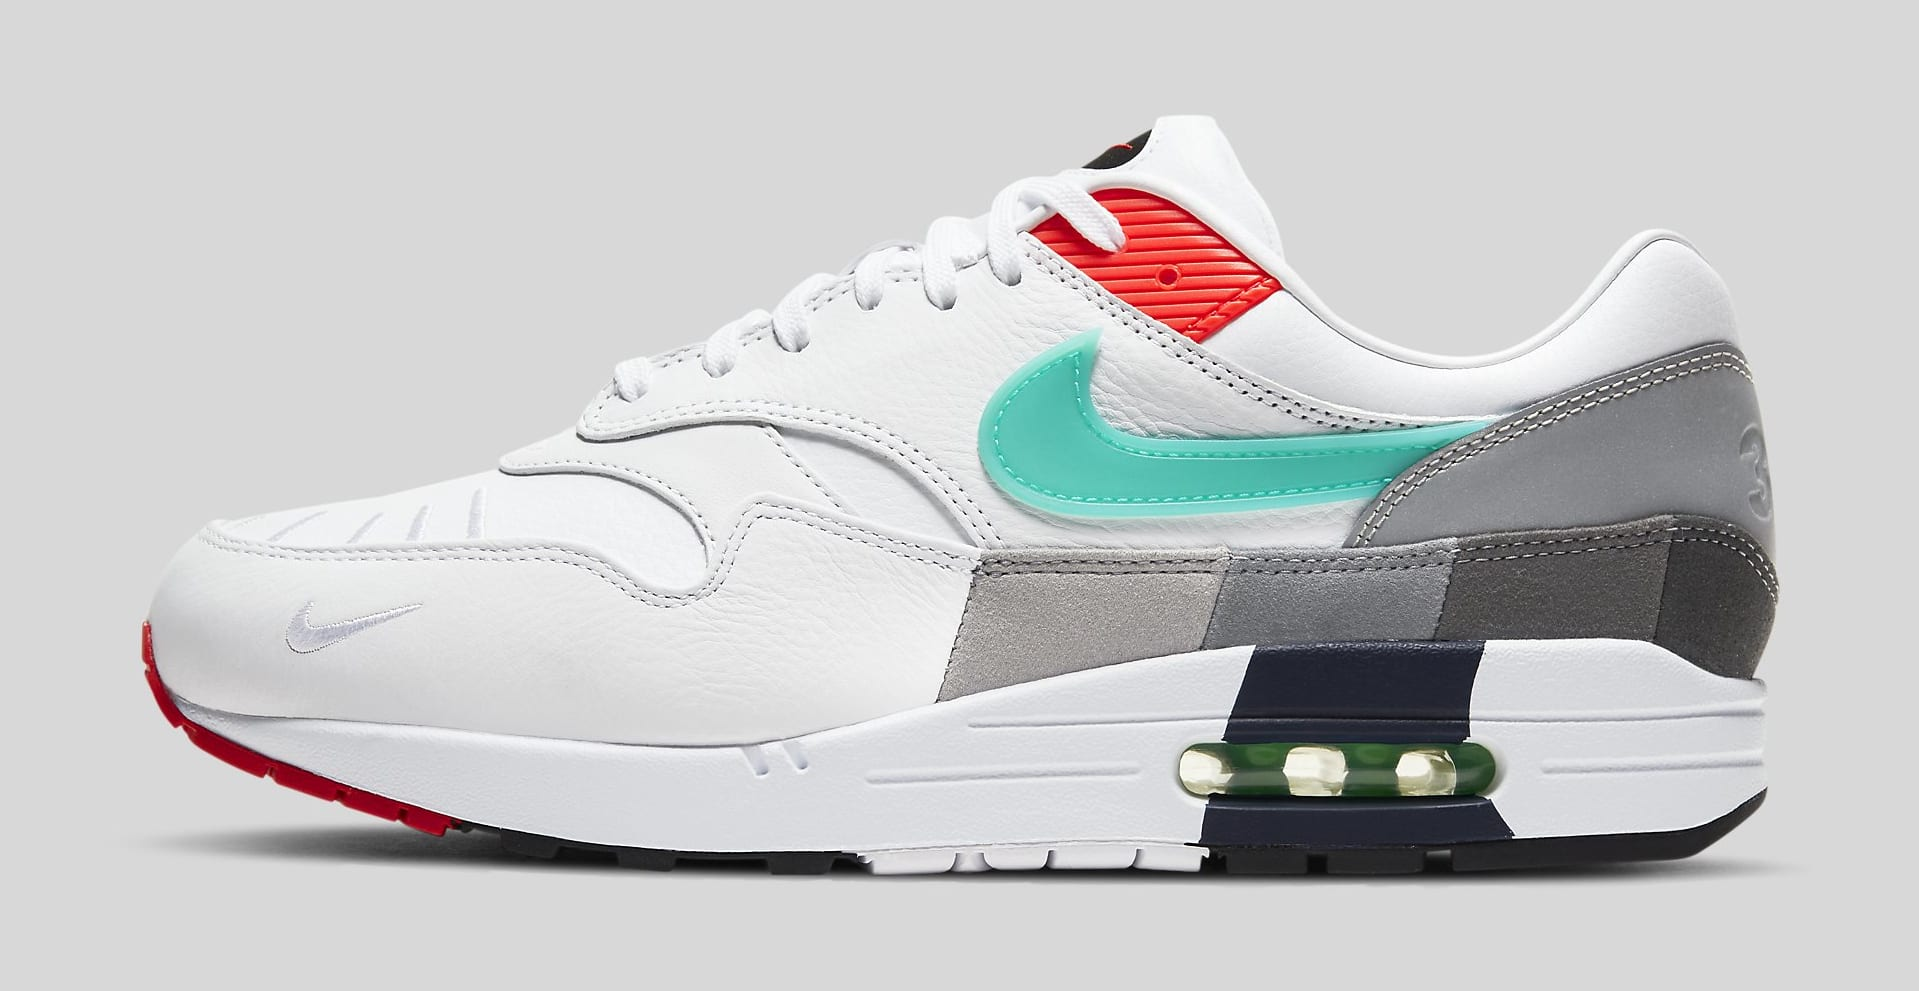 Nike Air Max 1 'Evolutions of Icons' CW6541-100 Lateral